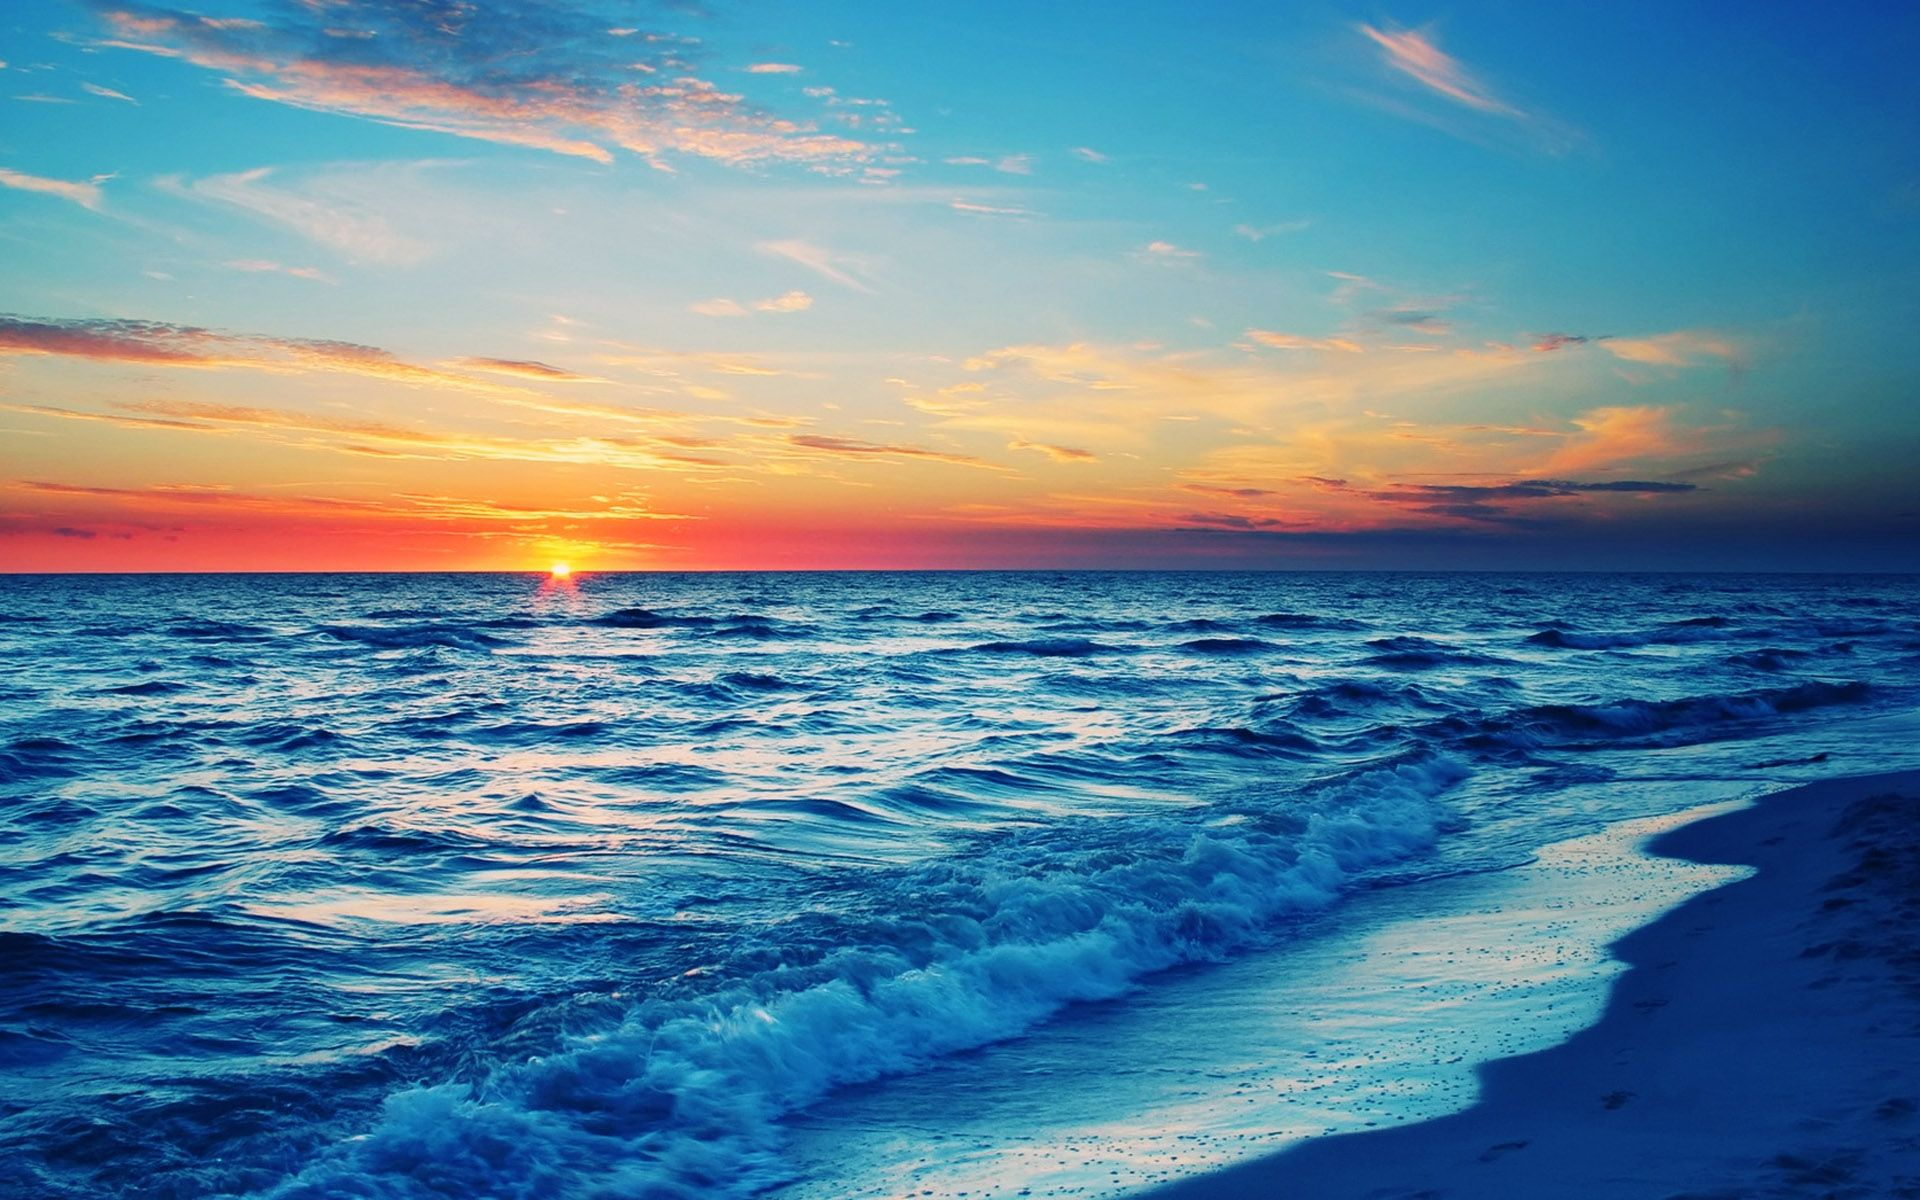 50 Amazing Beach Wallpapers Free To Download Beach Wallpaper Beach Sunset Wallpaper Sunset Wallpaper